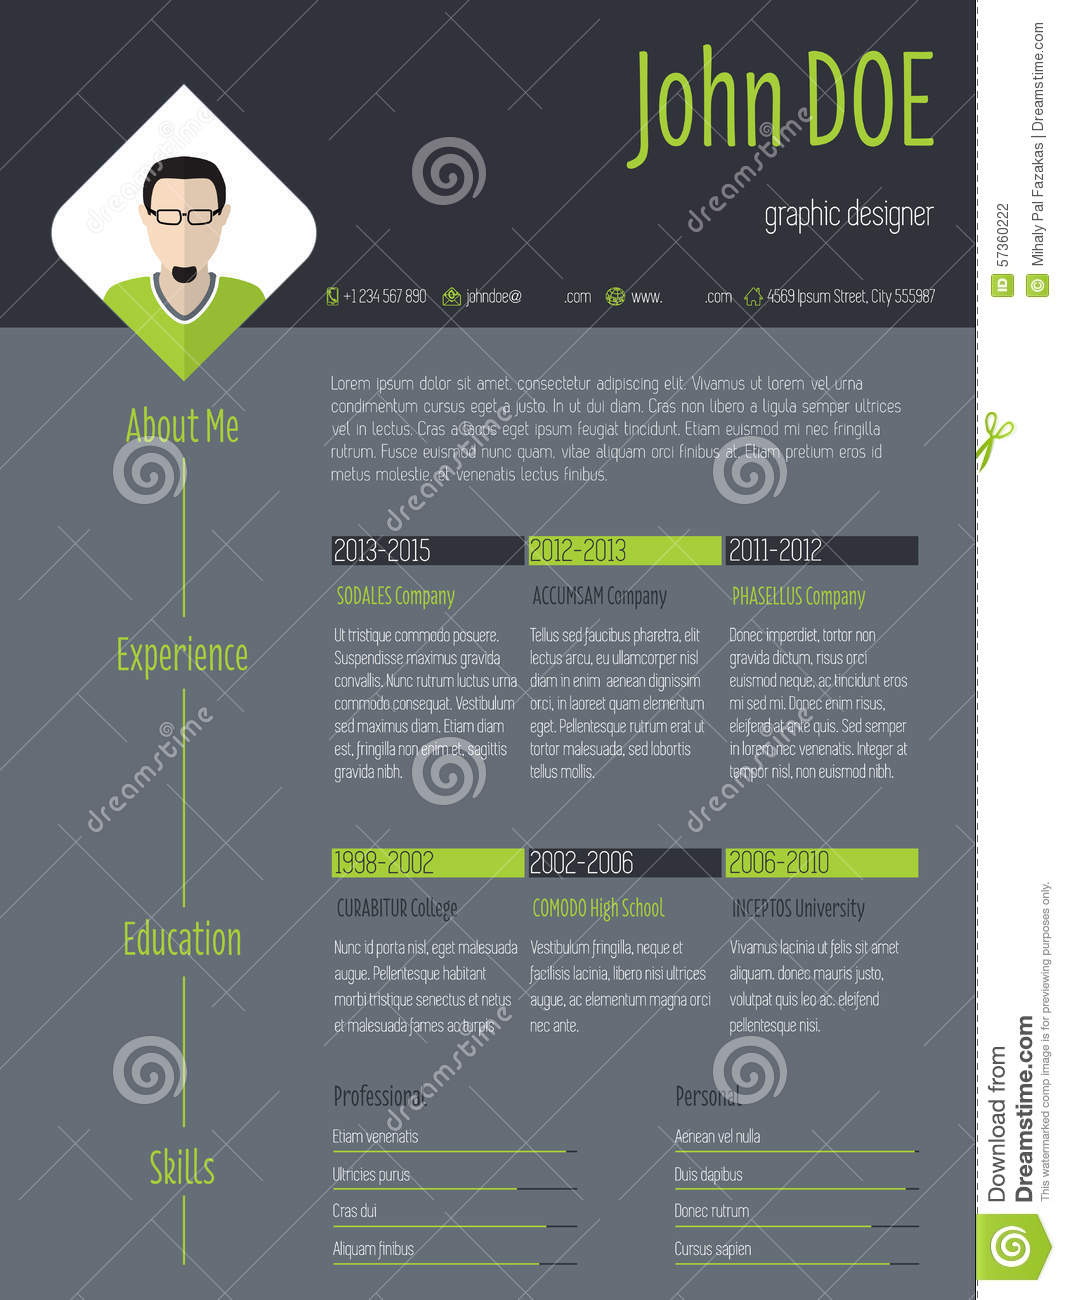 modern resume styles best online resume builder best resume modern resume styles 52 modern resume templates in word o hloom modern resume cv photo